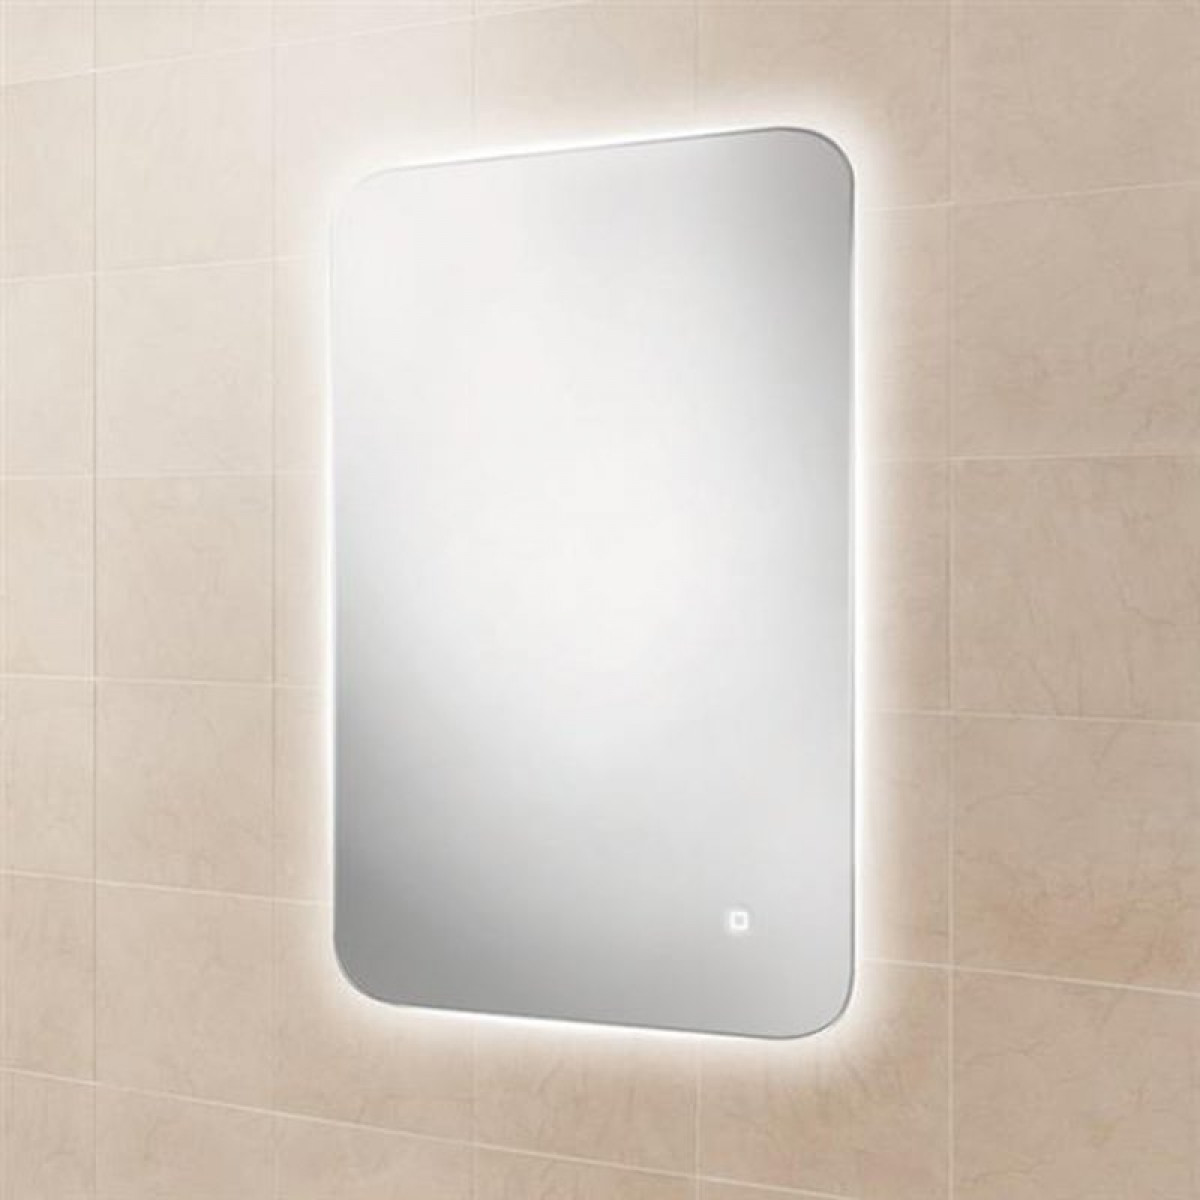 steam free bathroom mirrors hib ambience 50 led steam free bathroom mirror 79100000 20674